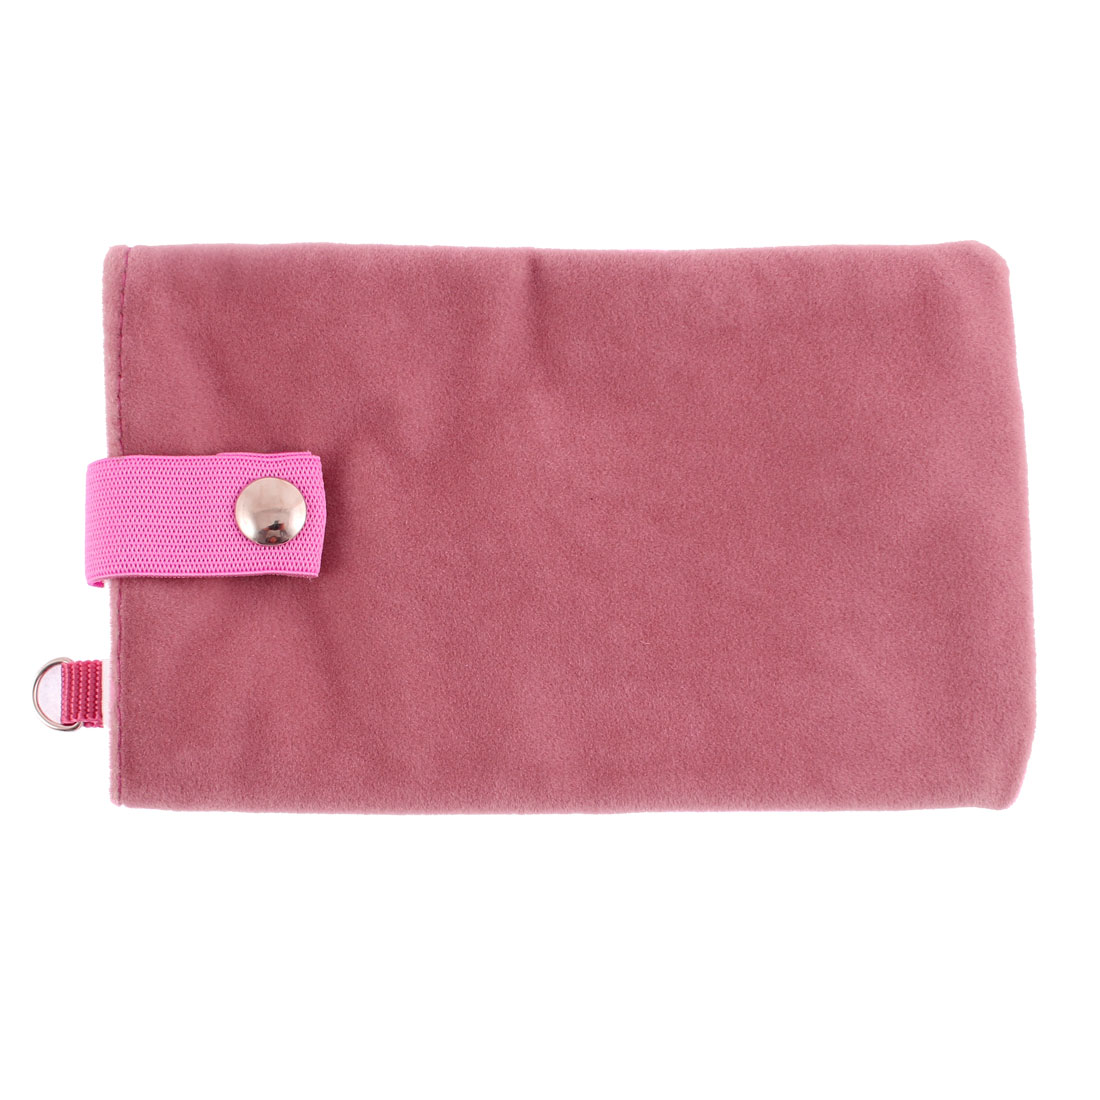 Velvet Magnetic Clasp Button Cell Phone Pouch Sleeve Bag Pink 16x9.5cm